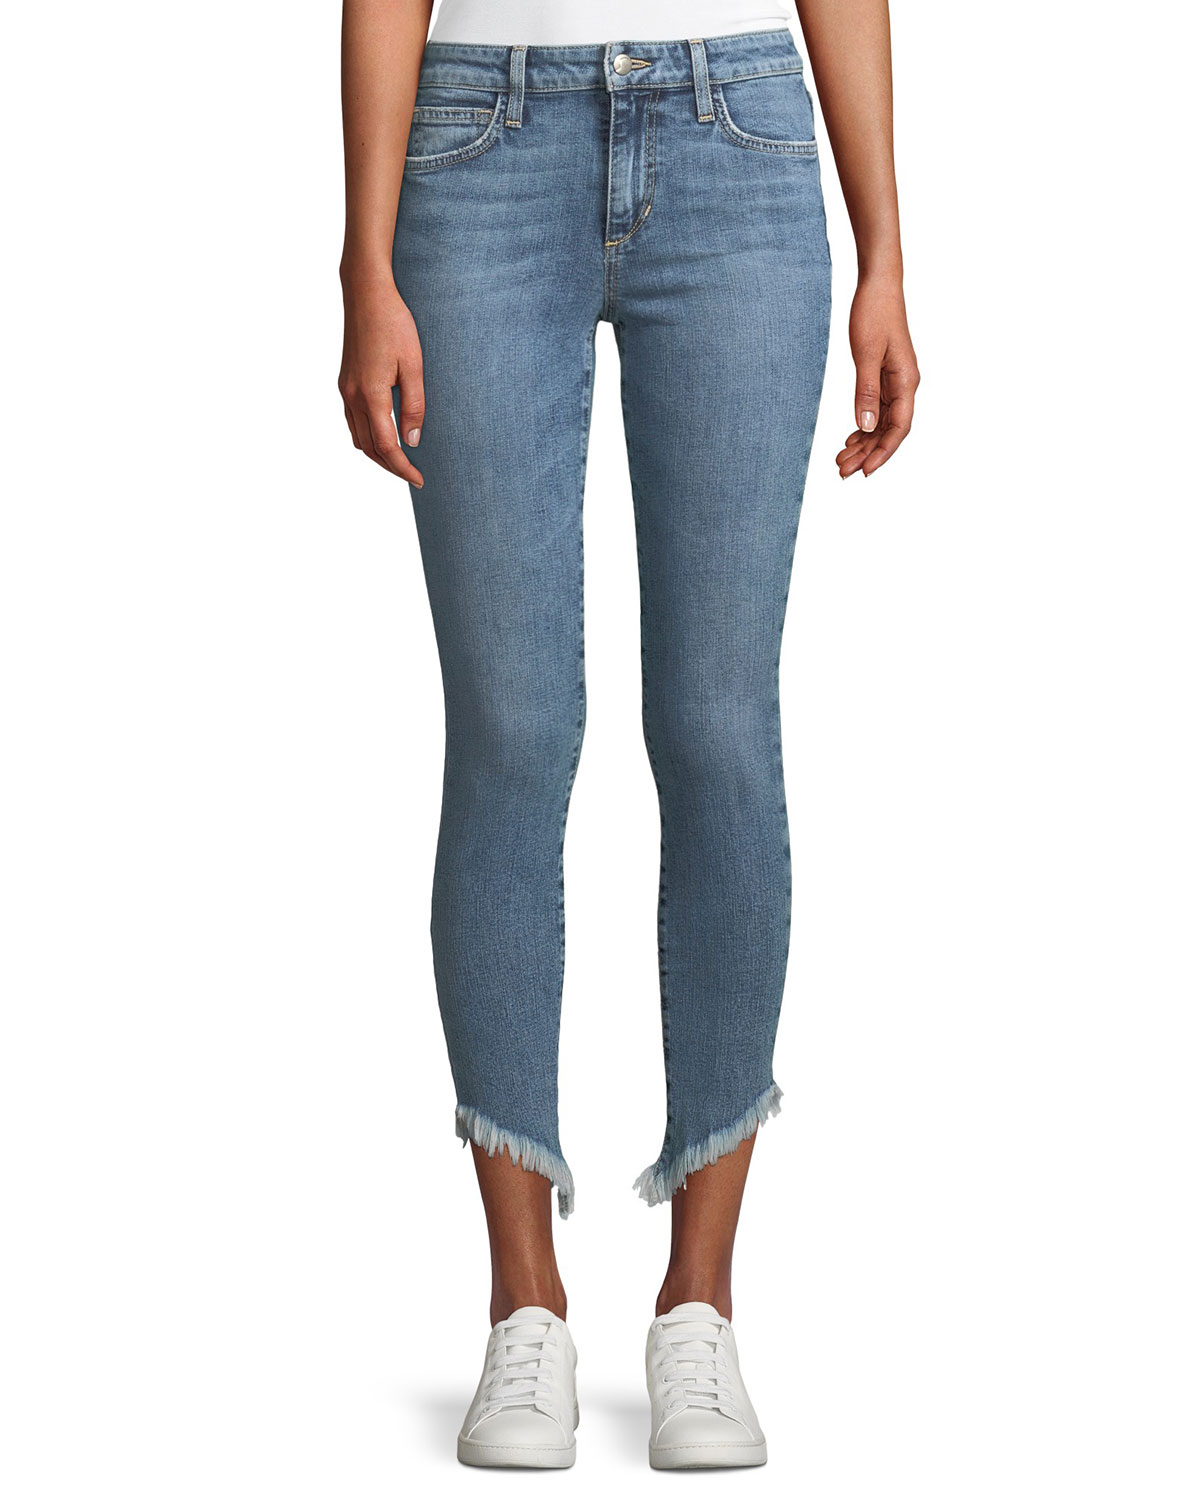 Marcela Icon Ankle Skinny Jeans with Diagonal Fray Hem